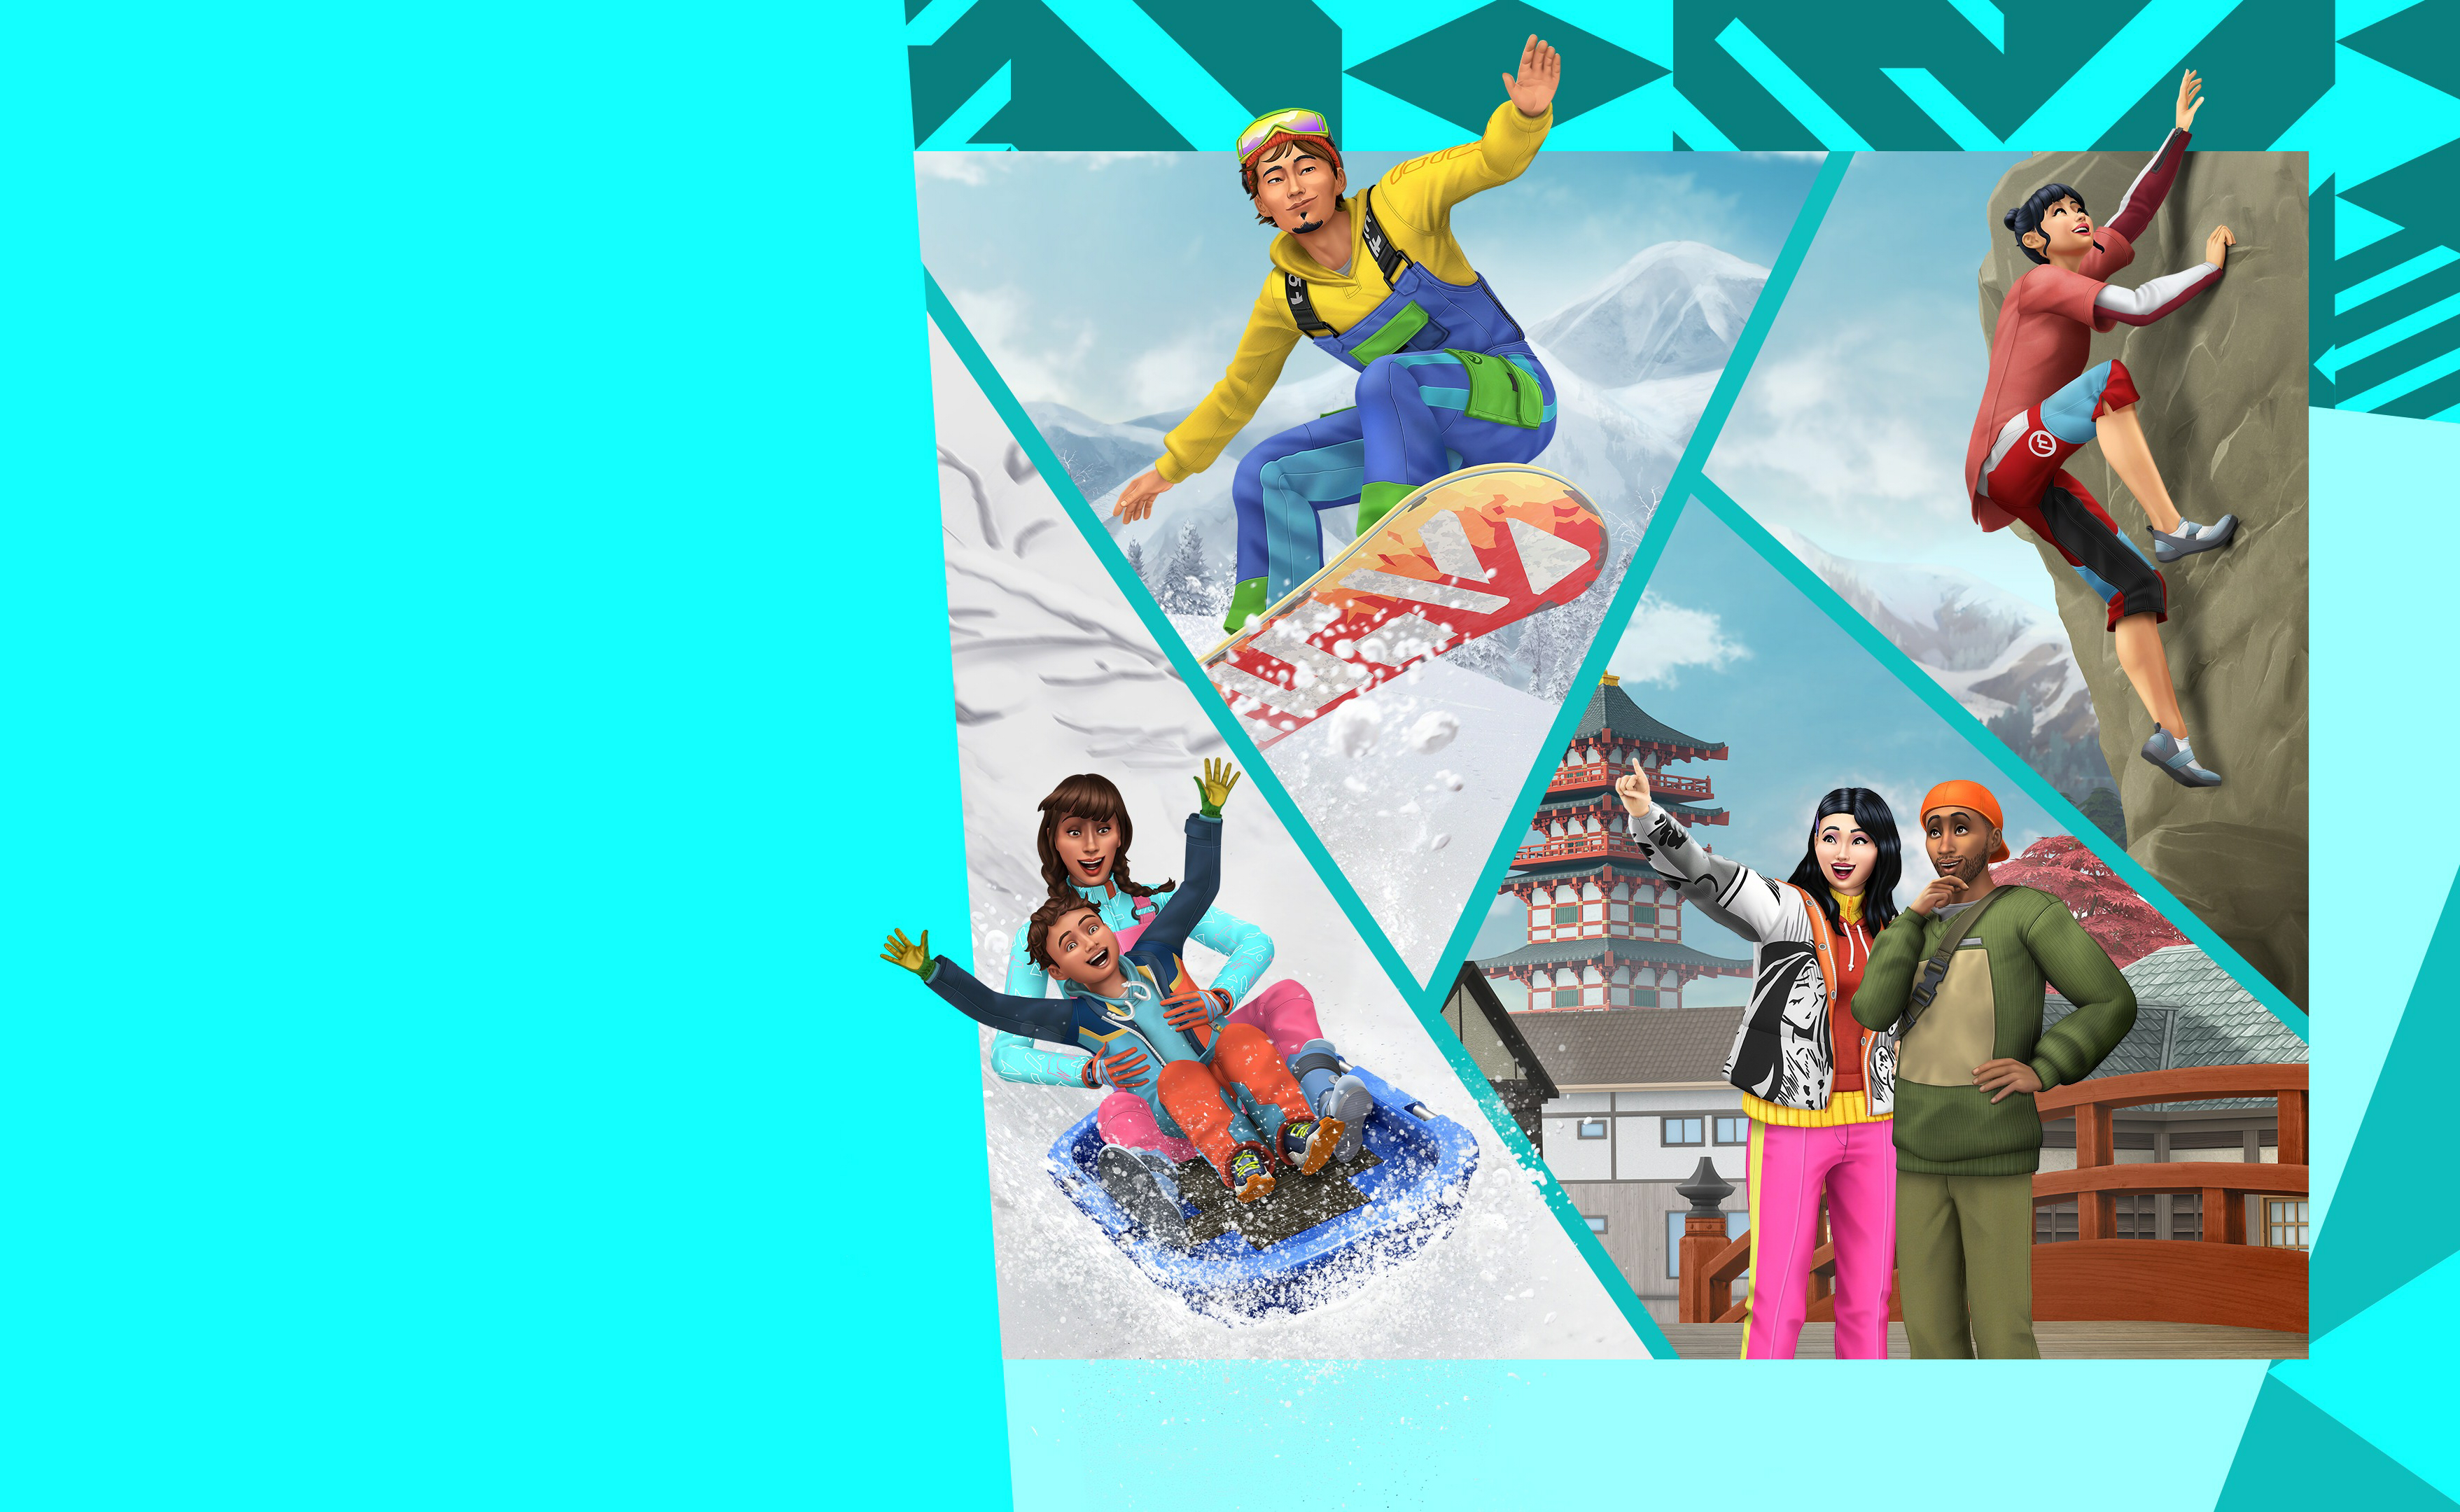 Several Sims participate in winter activities, likes snowboarding and sledding